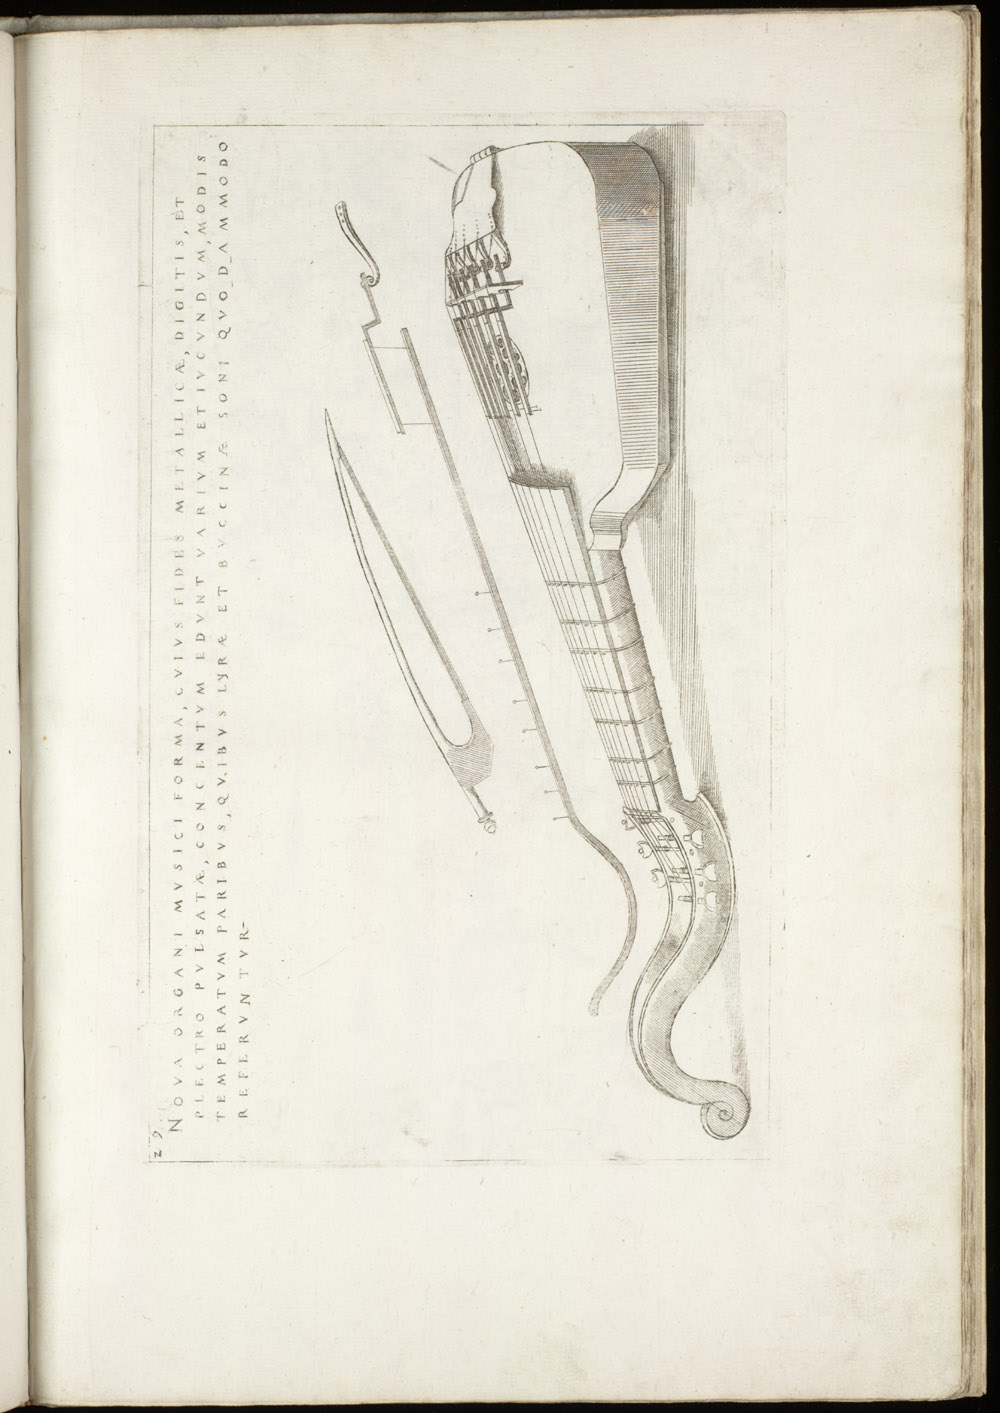 Plate 29 [Musical instrument],  Image number:SIL4-2-91a